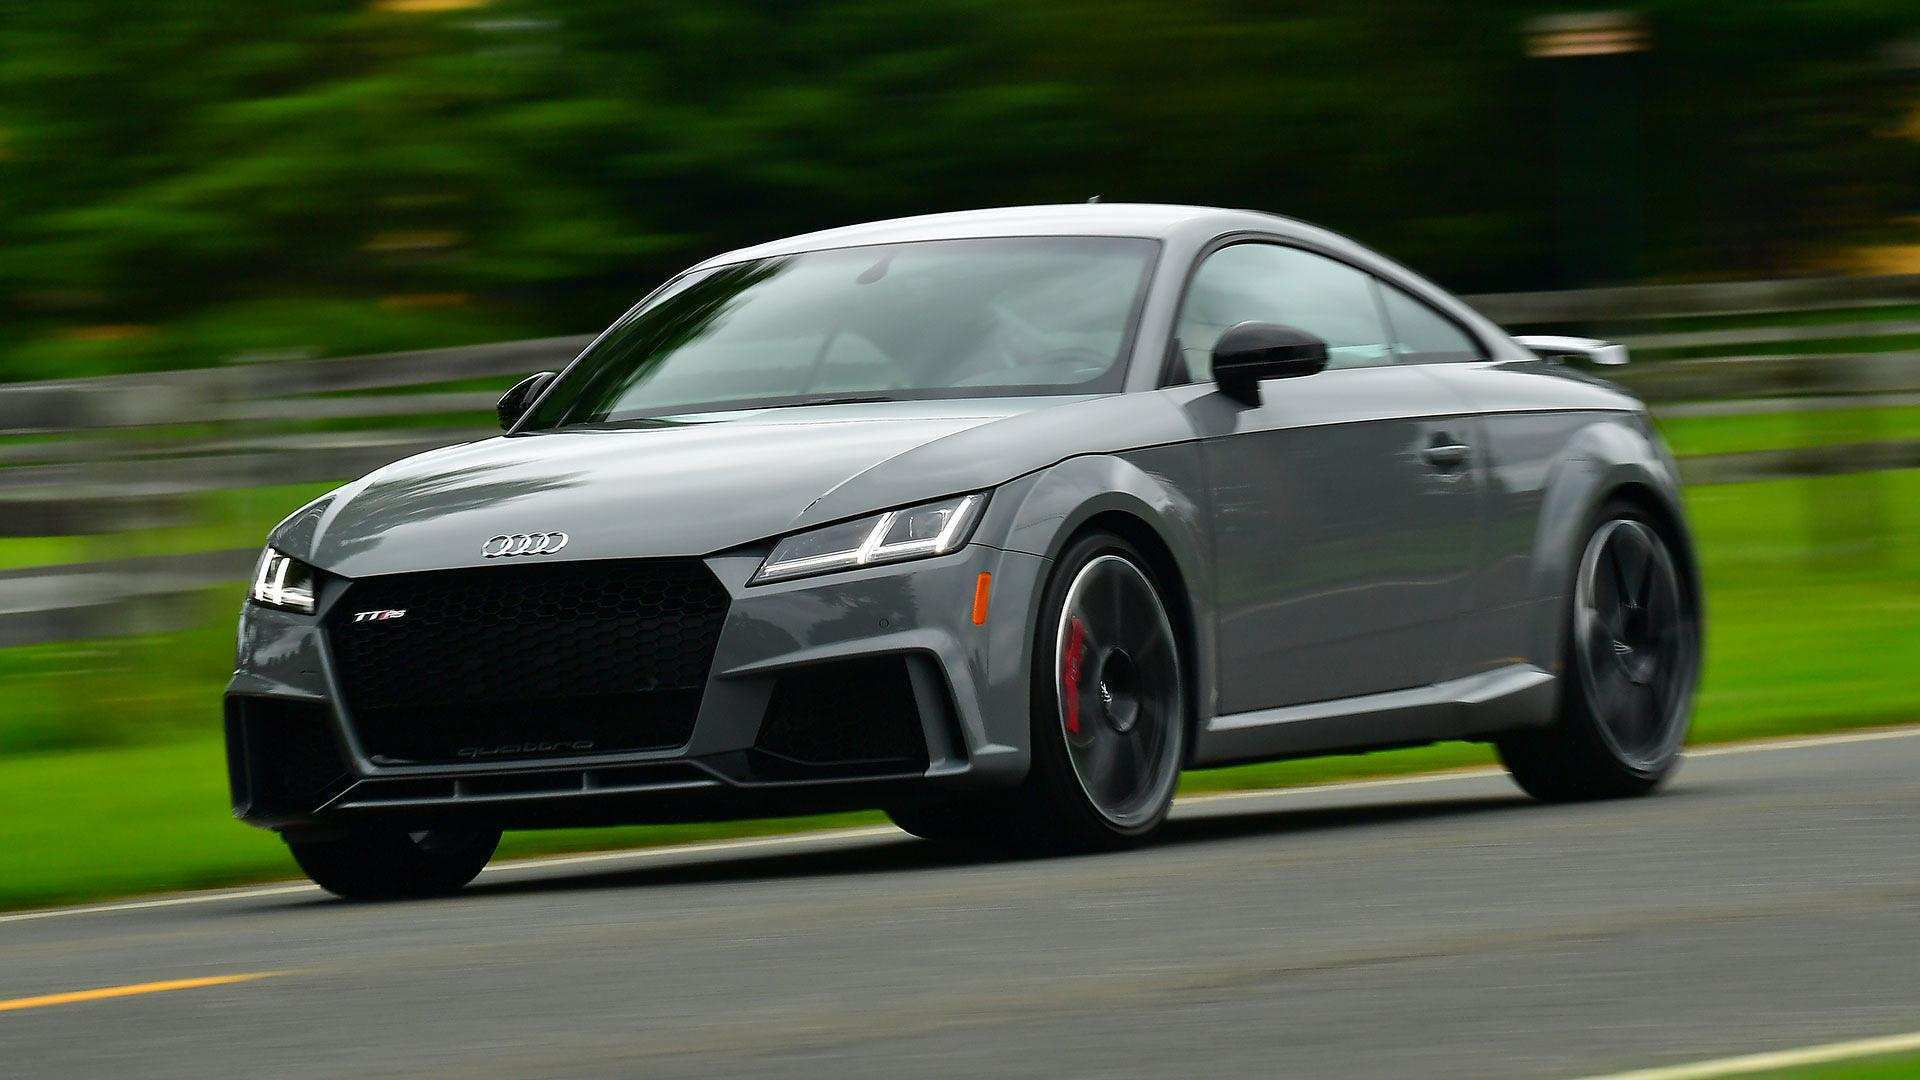 62 Best Review New Audi Tt Rs Plus 2019 Price And Review Reviews for New Audi Tt Rs Plus 2019 Price And Review